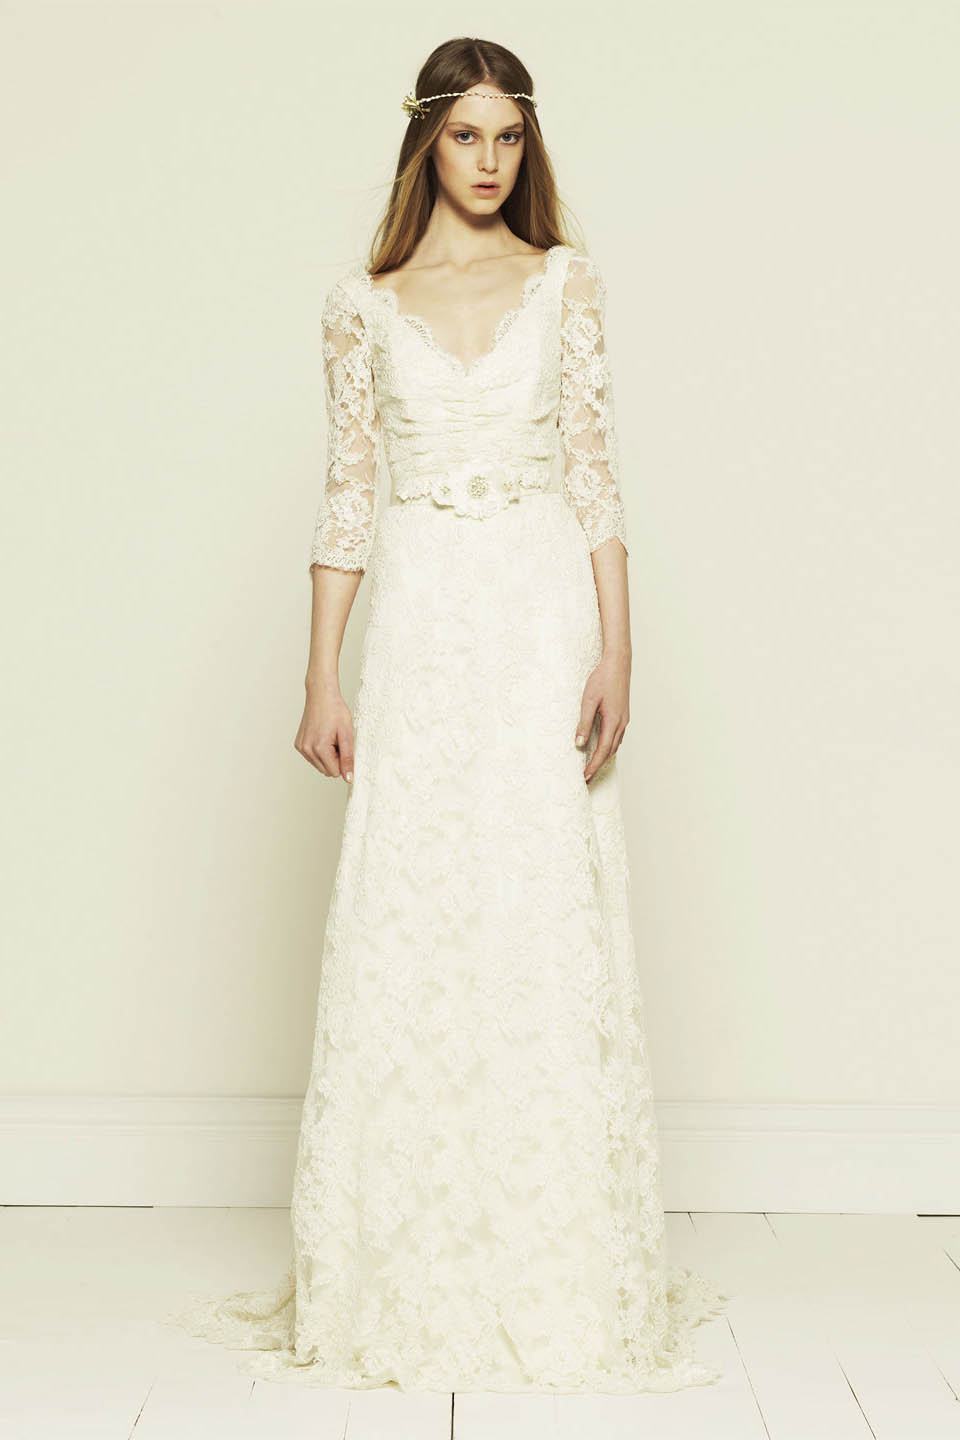 Wedding Dresses  Lace Sleeves : Long lace dress dressed up girl